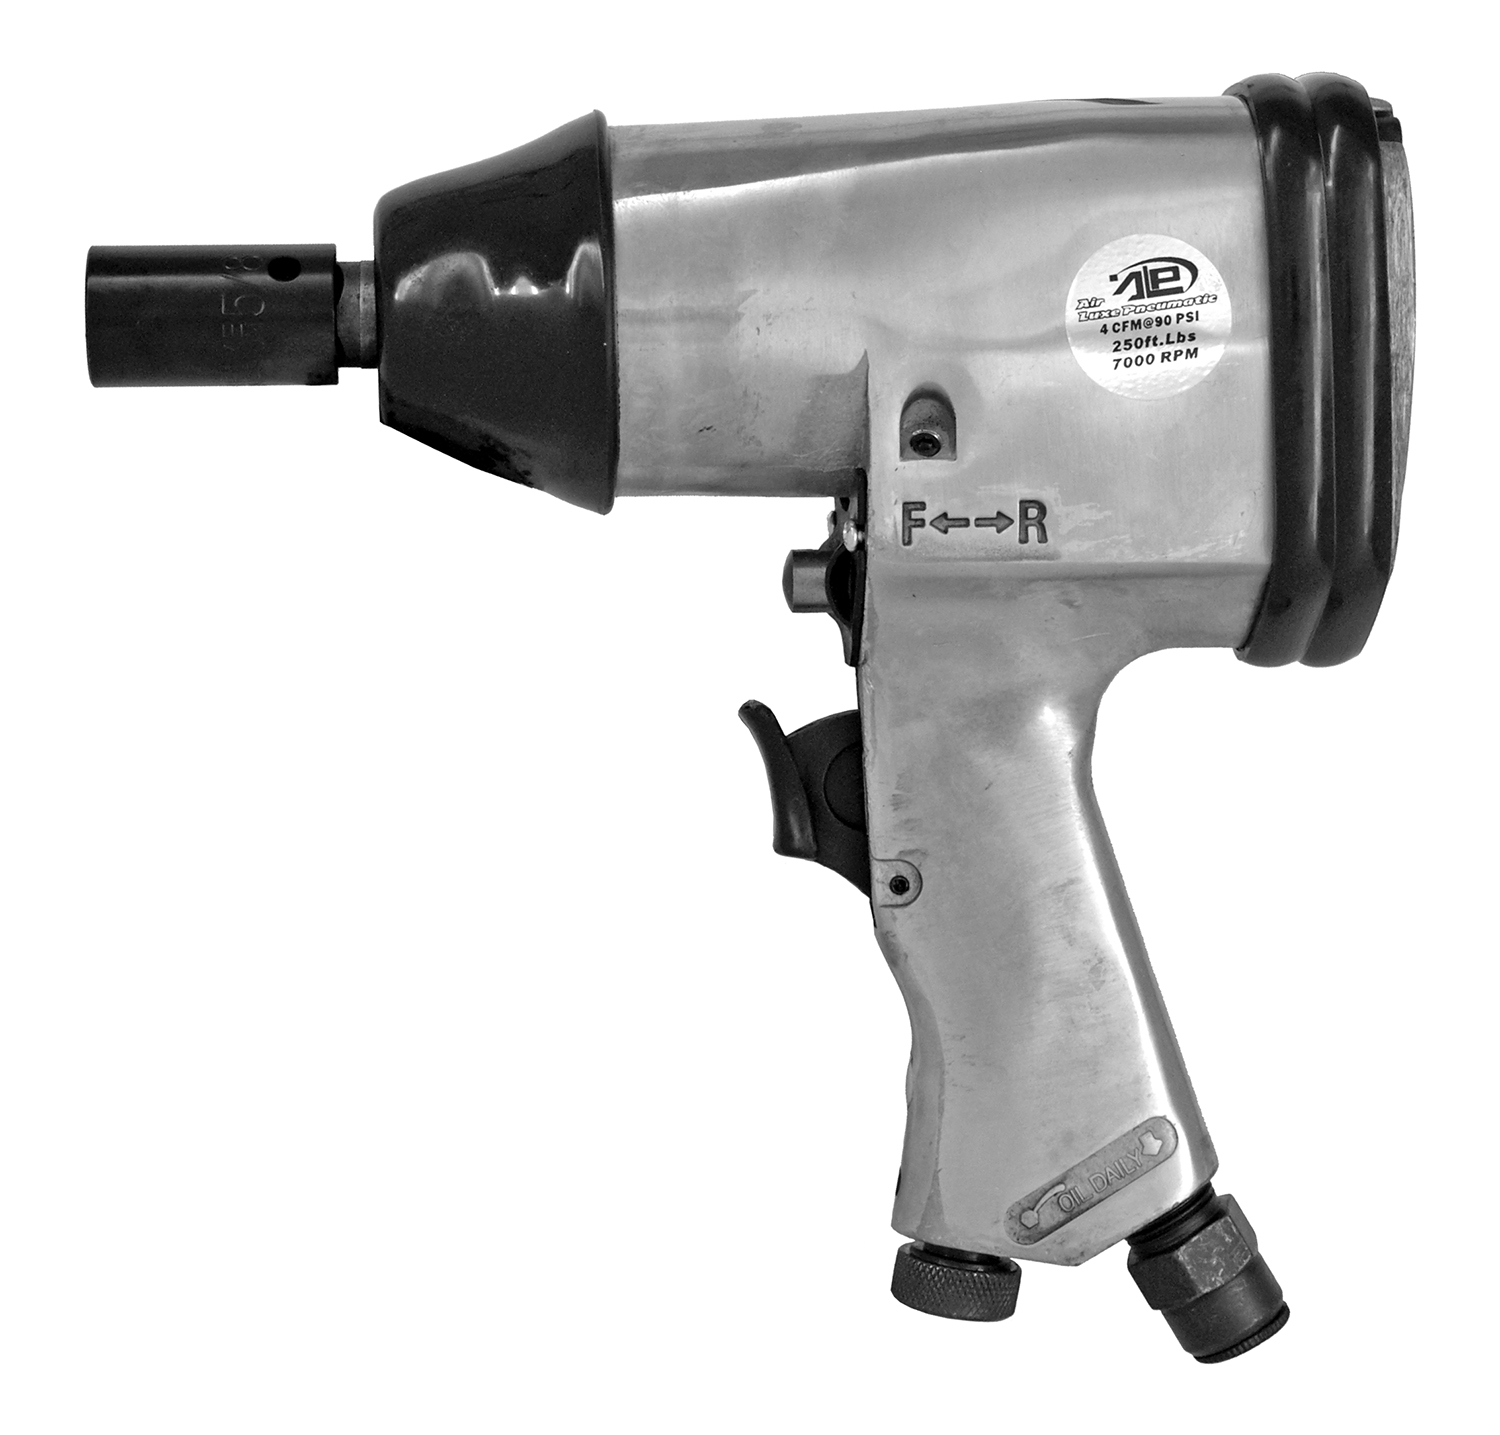 1/2 in Air Impact Wrench Kit